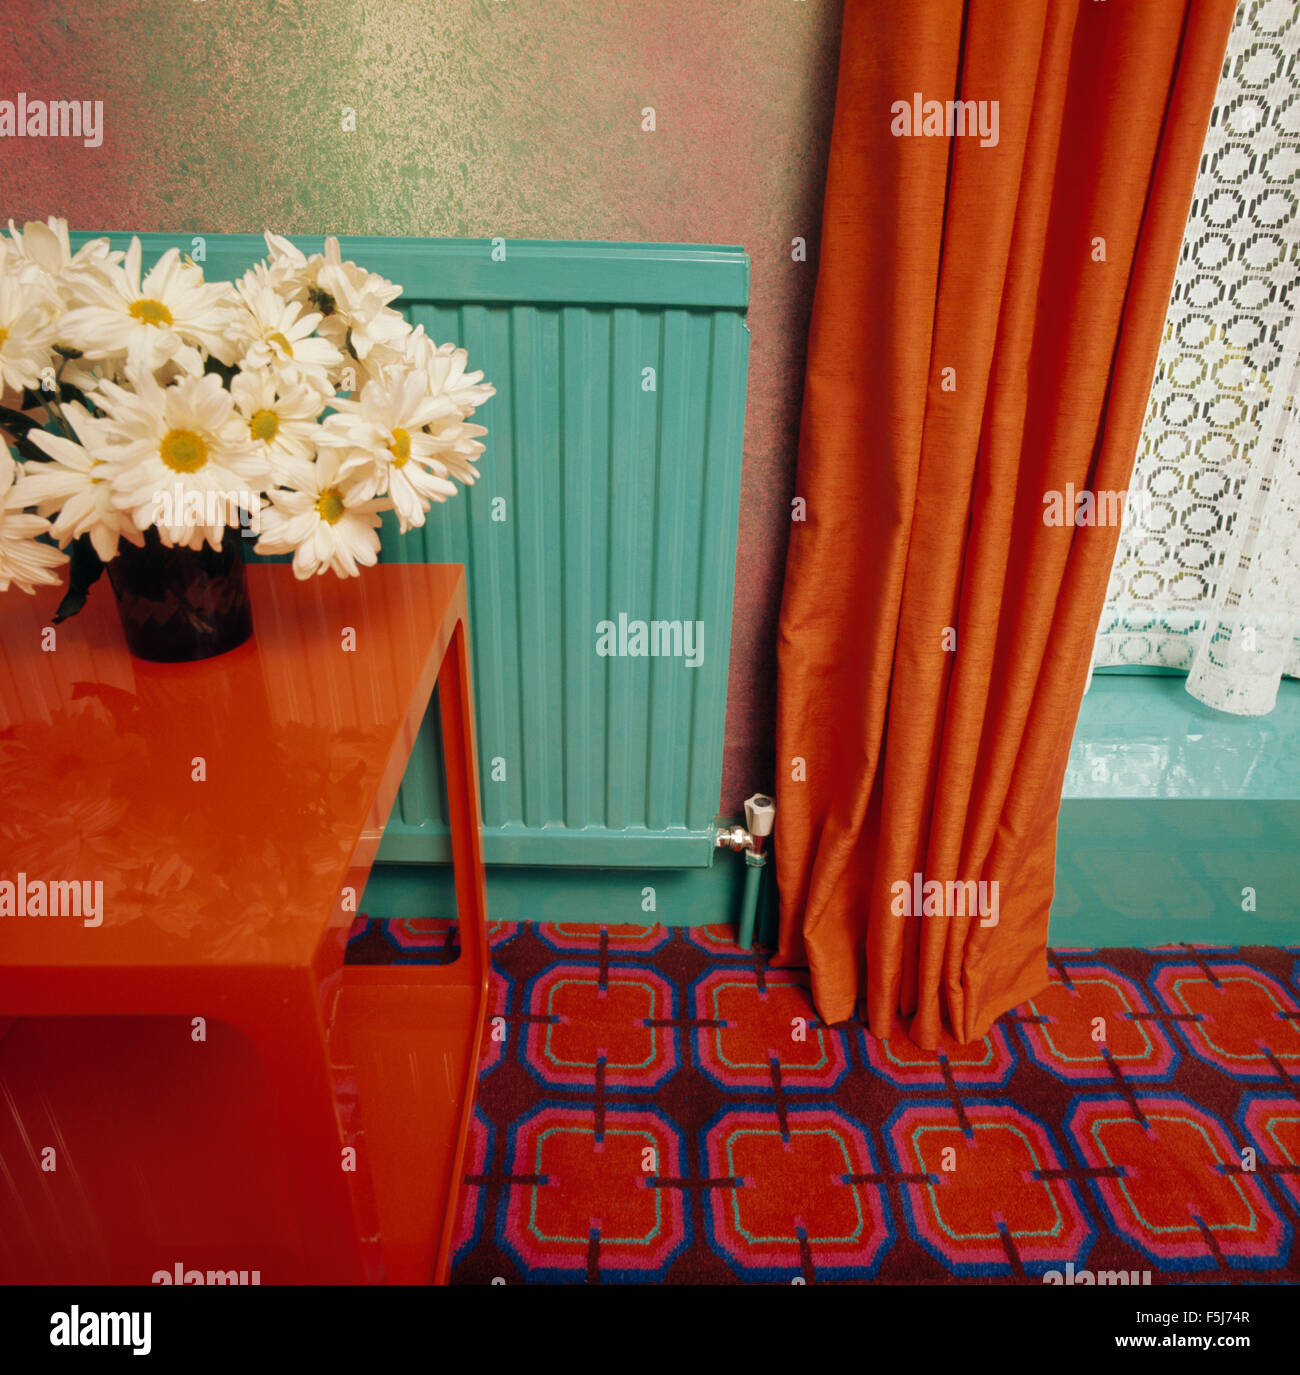 Close Up Of Orange Curtain And Vibrant Patterned Carpet In Seventies Dining Room With A Turquoise Painted Radiator